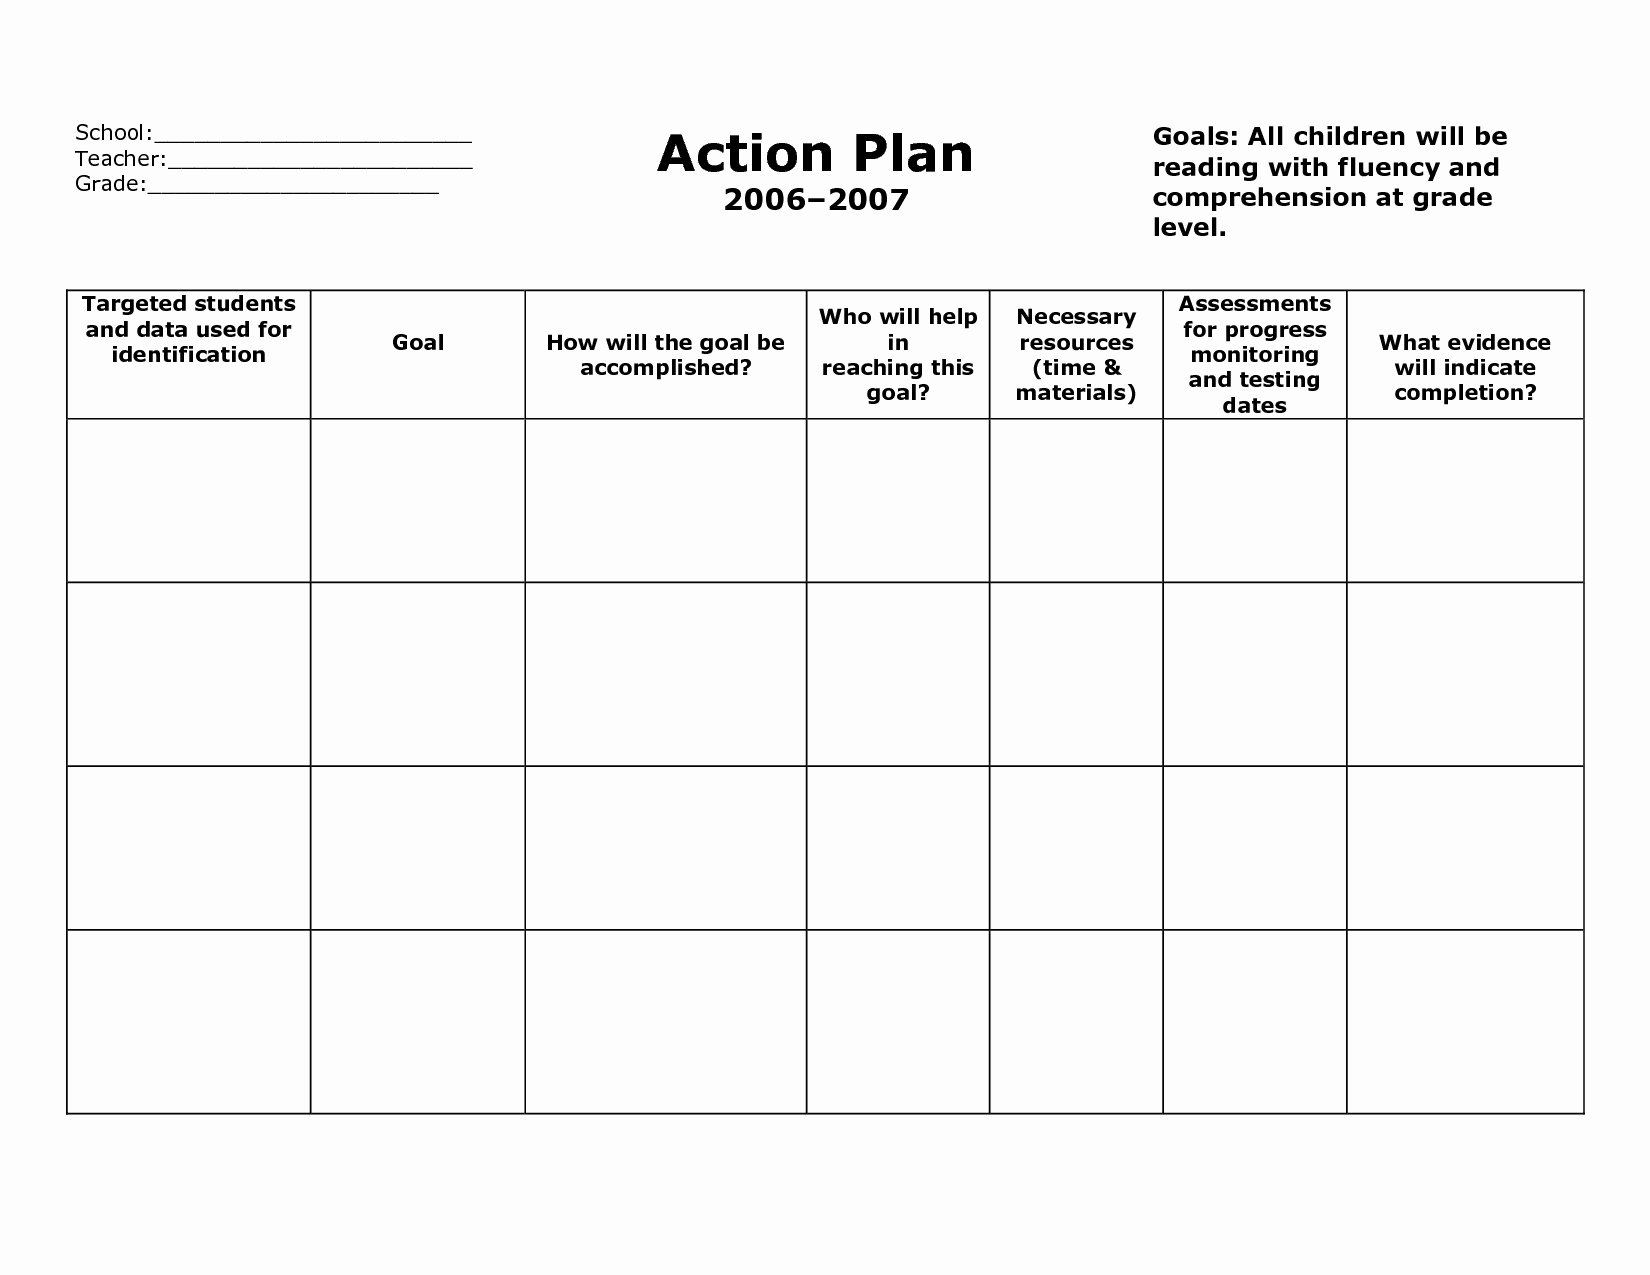 Action Plan Template Excel Beautiful Action Plan Template Excel